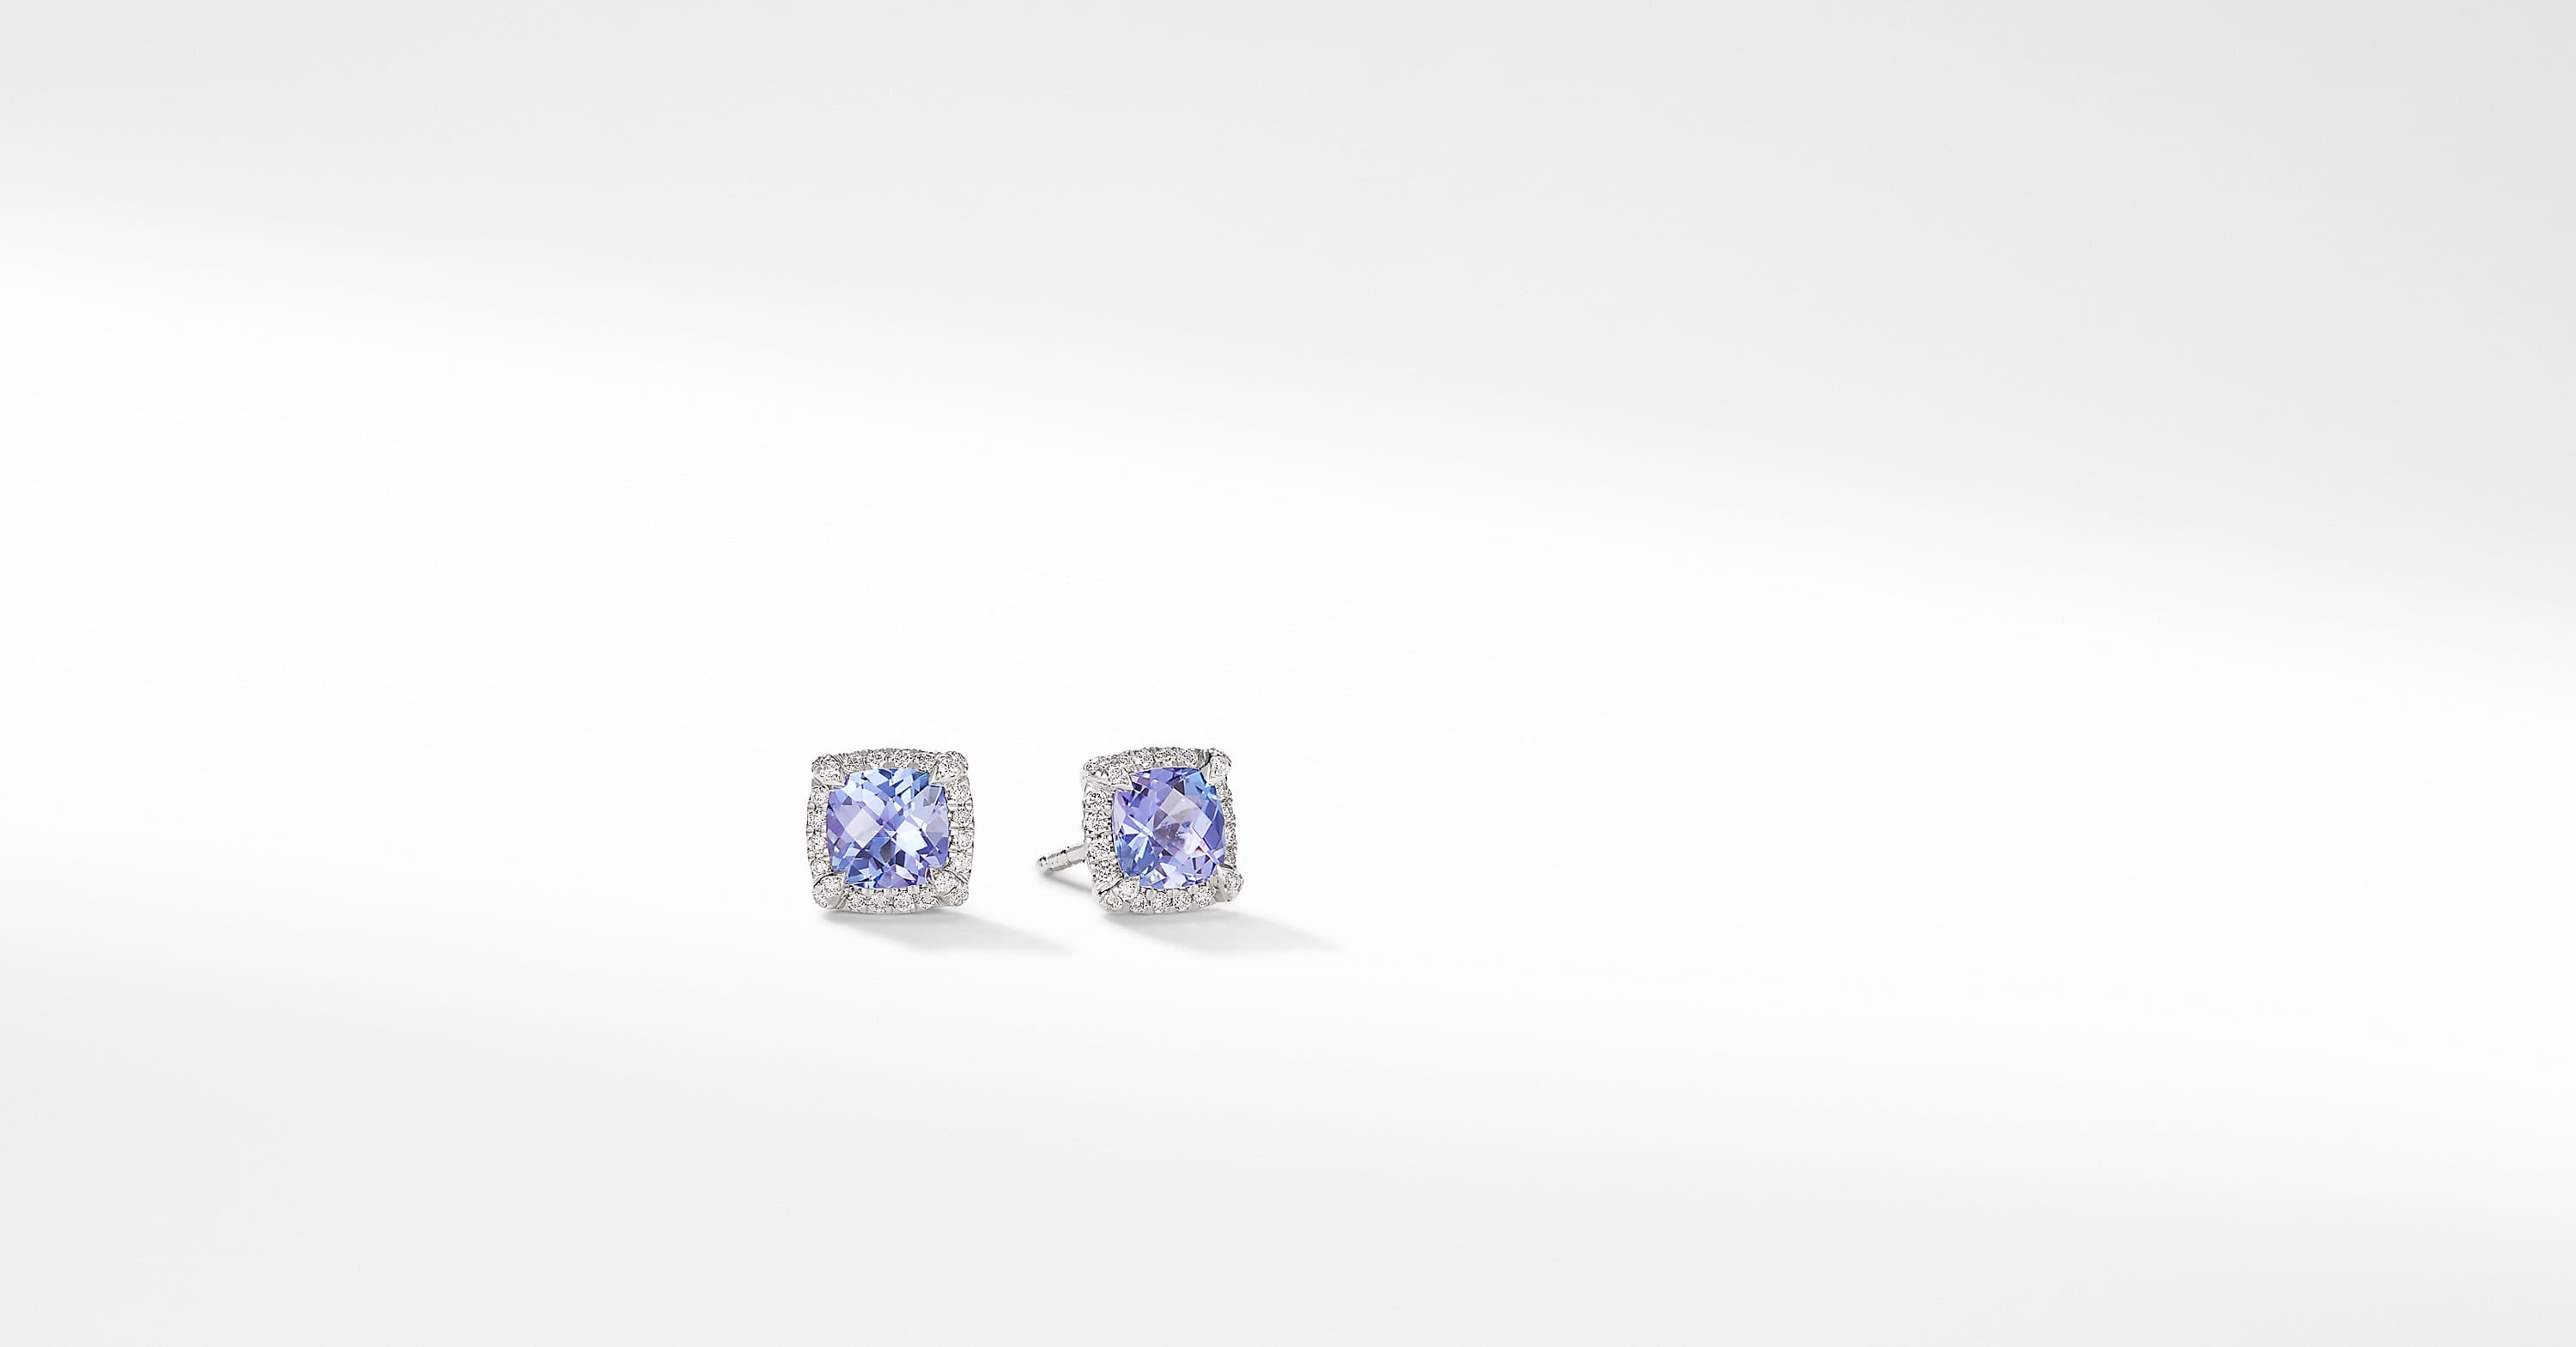 Petite Chatelaine Pavé Bezel Stud Earrings in 18K White Gold, 5mm